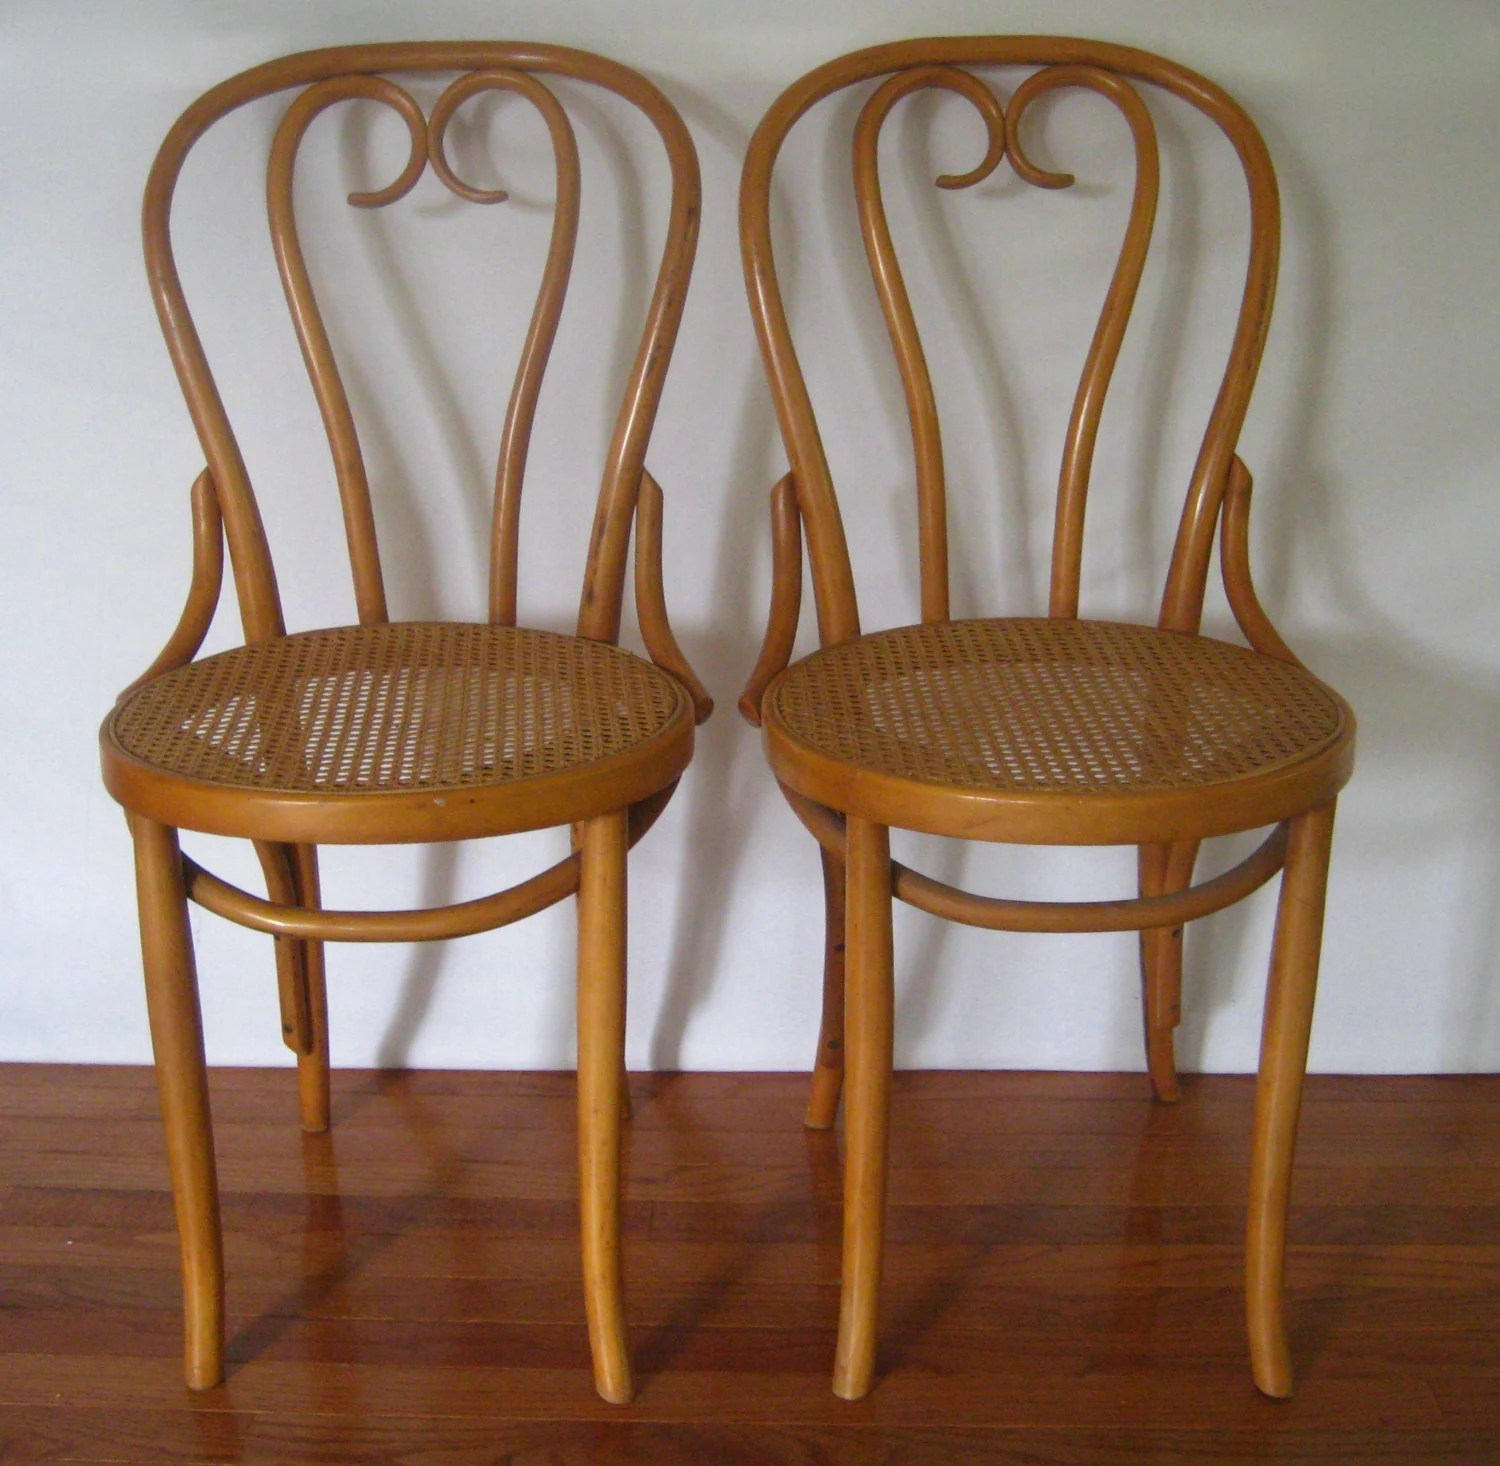 bentwood cane seat chairs colored resin adirondack reserved for shauna 2 vintage cafe bistro